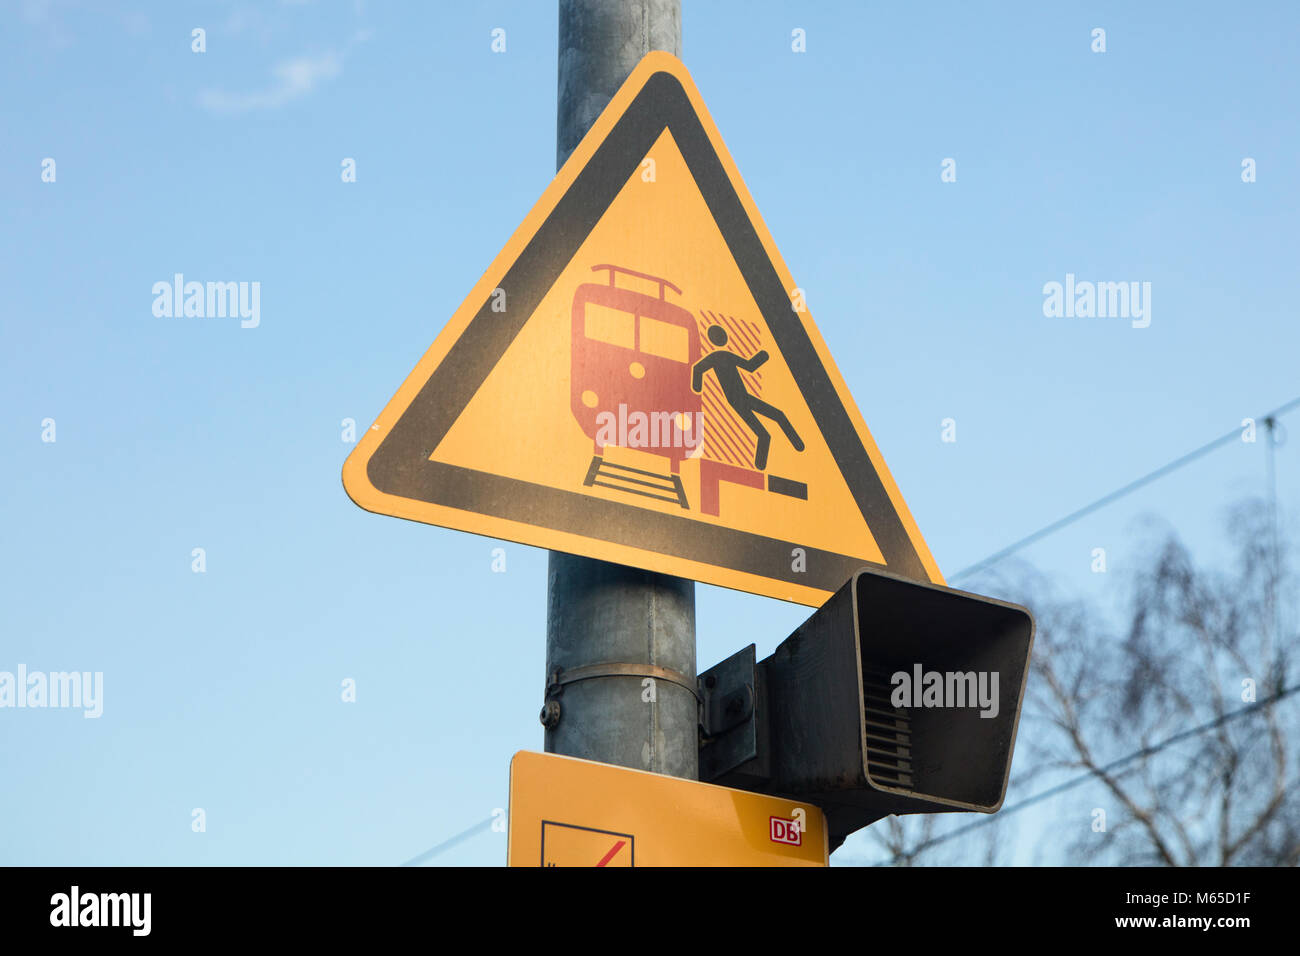 Signboard in german train station, bewaring people paying attention when train comes and not falling in rail tracks. - Stock Image